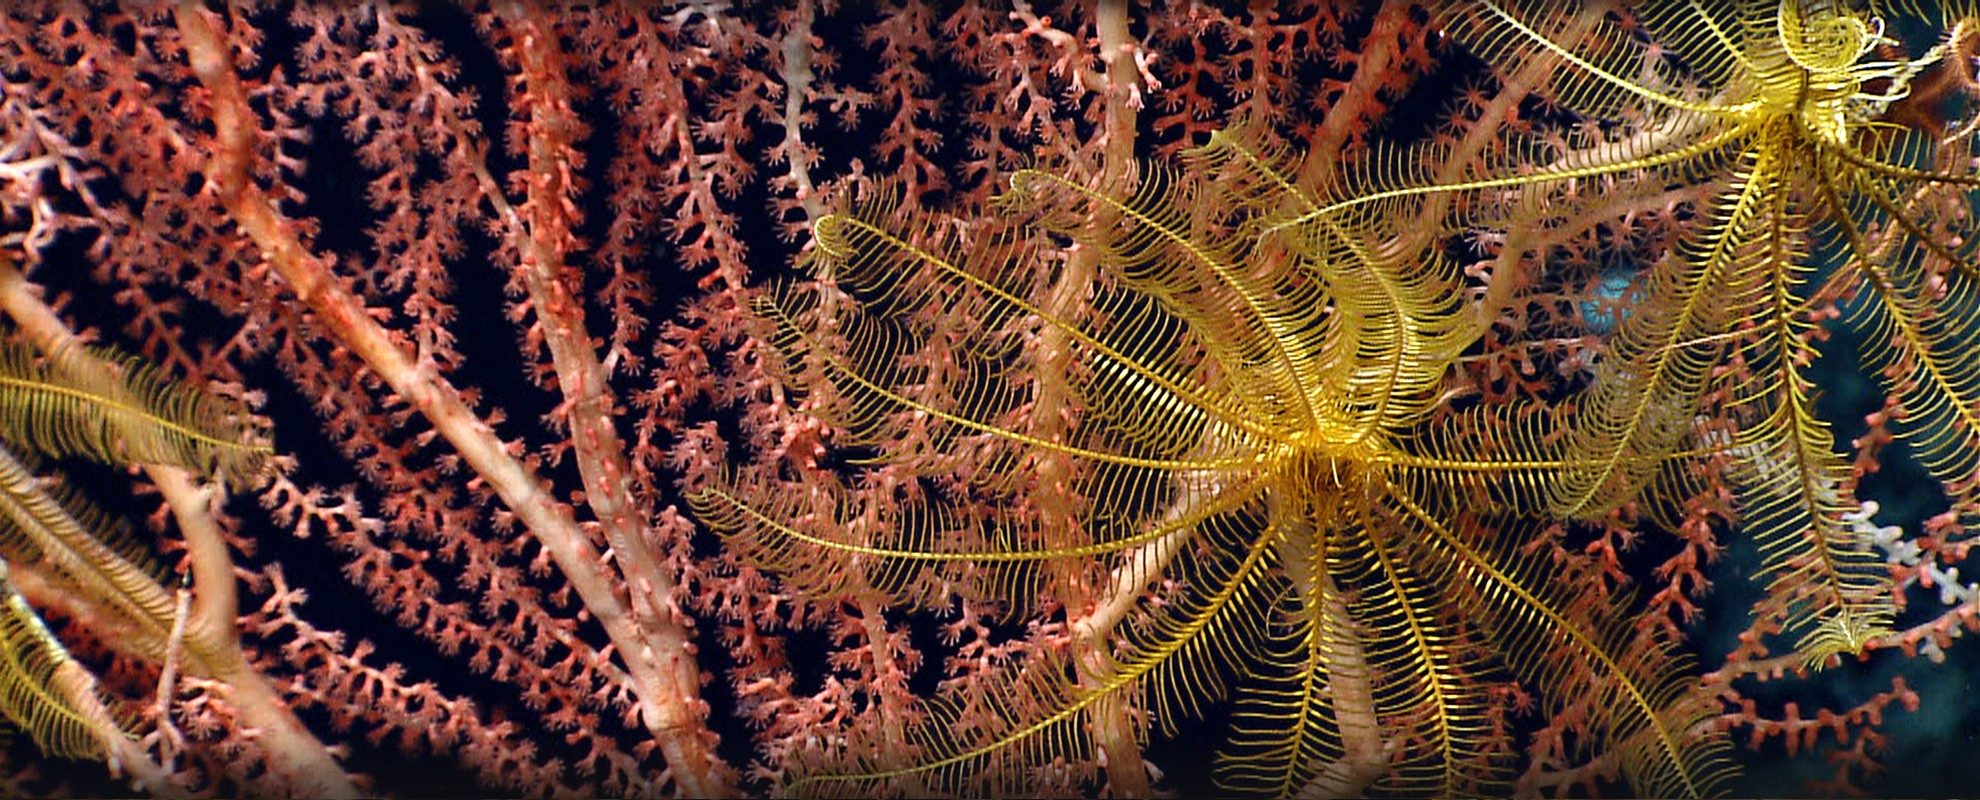 """Feather star"" crinoids on bamboo coral, Mytilus Seamount."